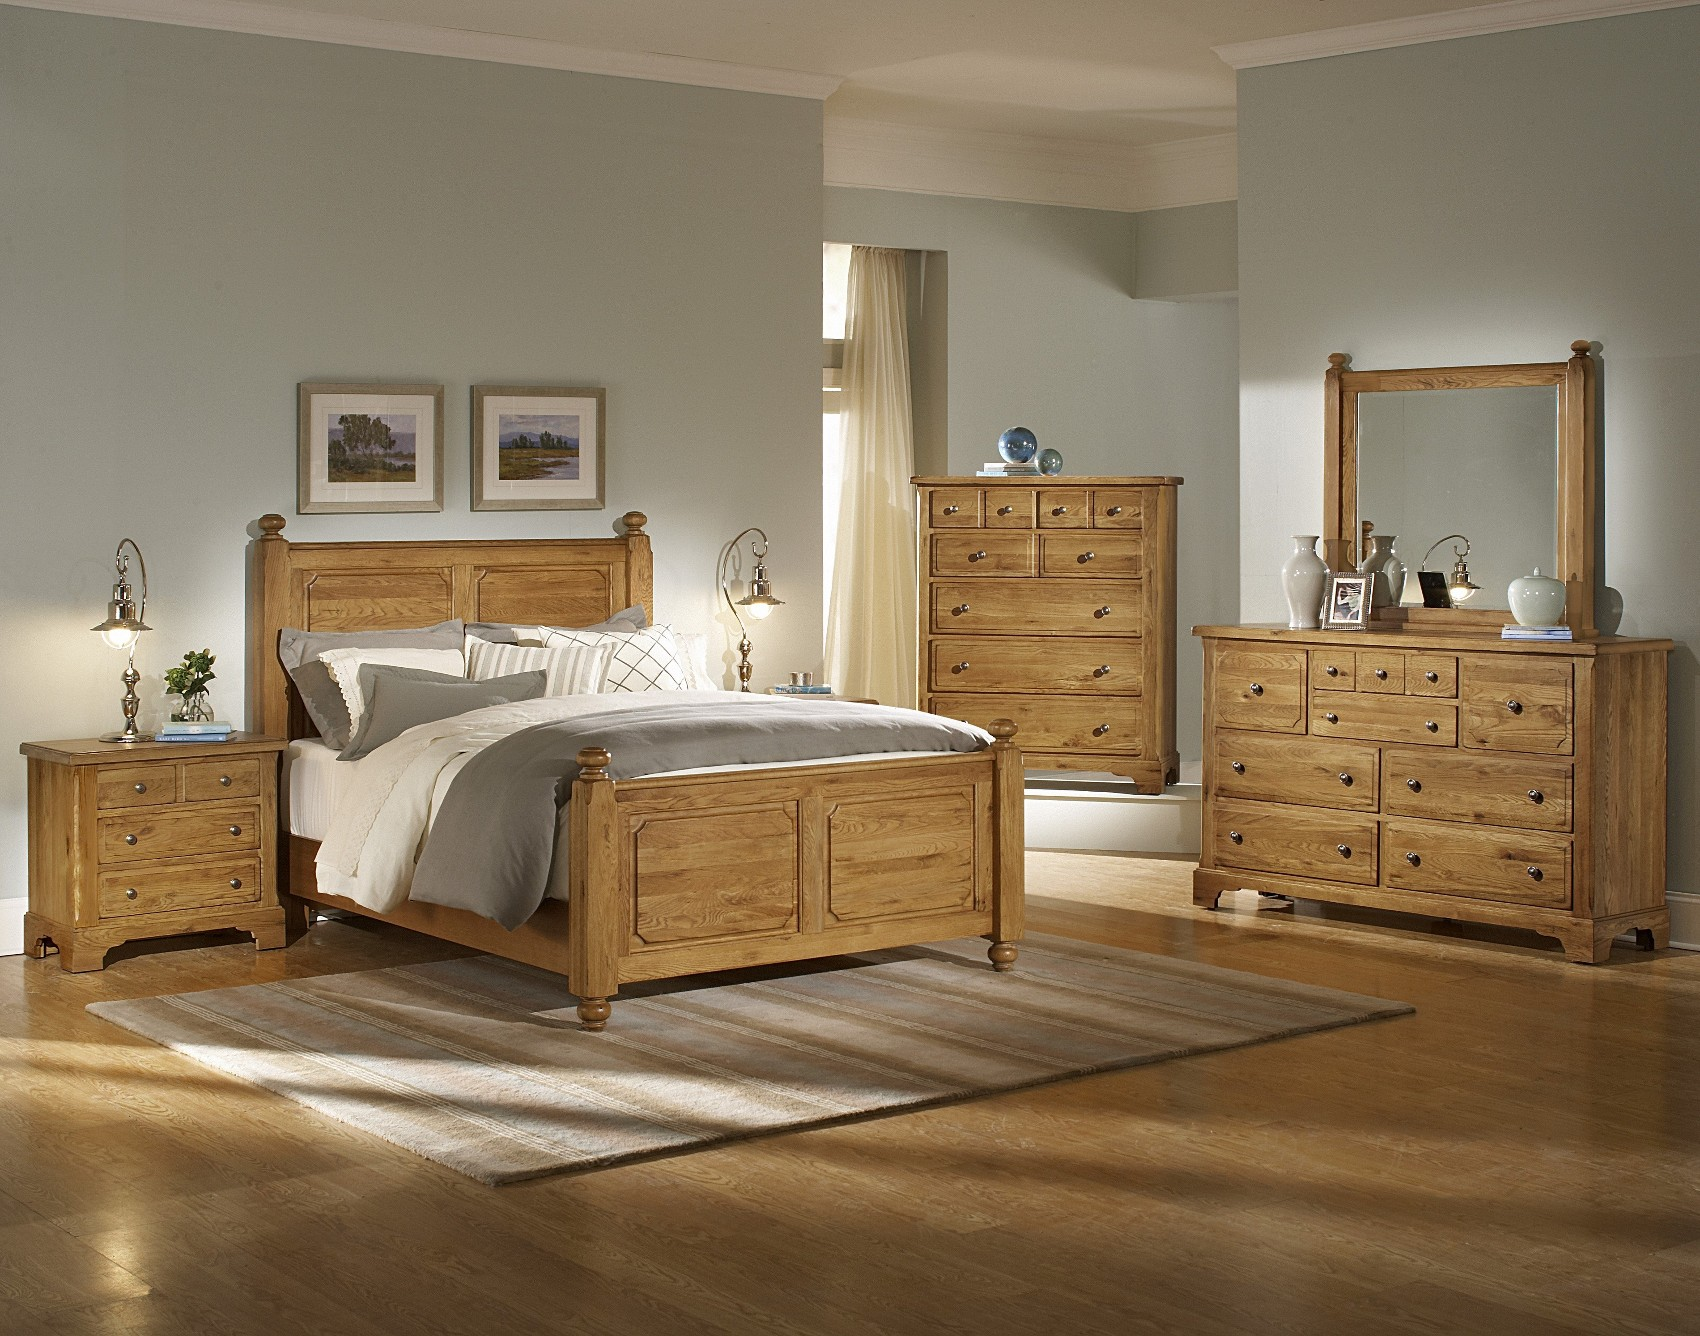 Super Picture Of Bedroom Decorating Ideas With Wood Furniture Download Free Architecture Designs Scobabritishbridgeorg